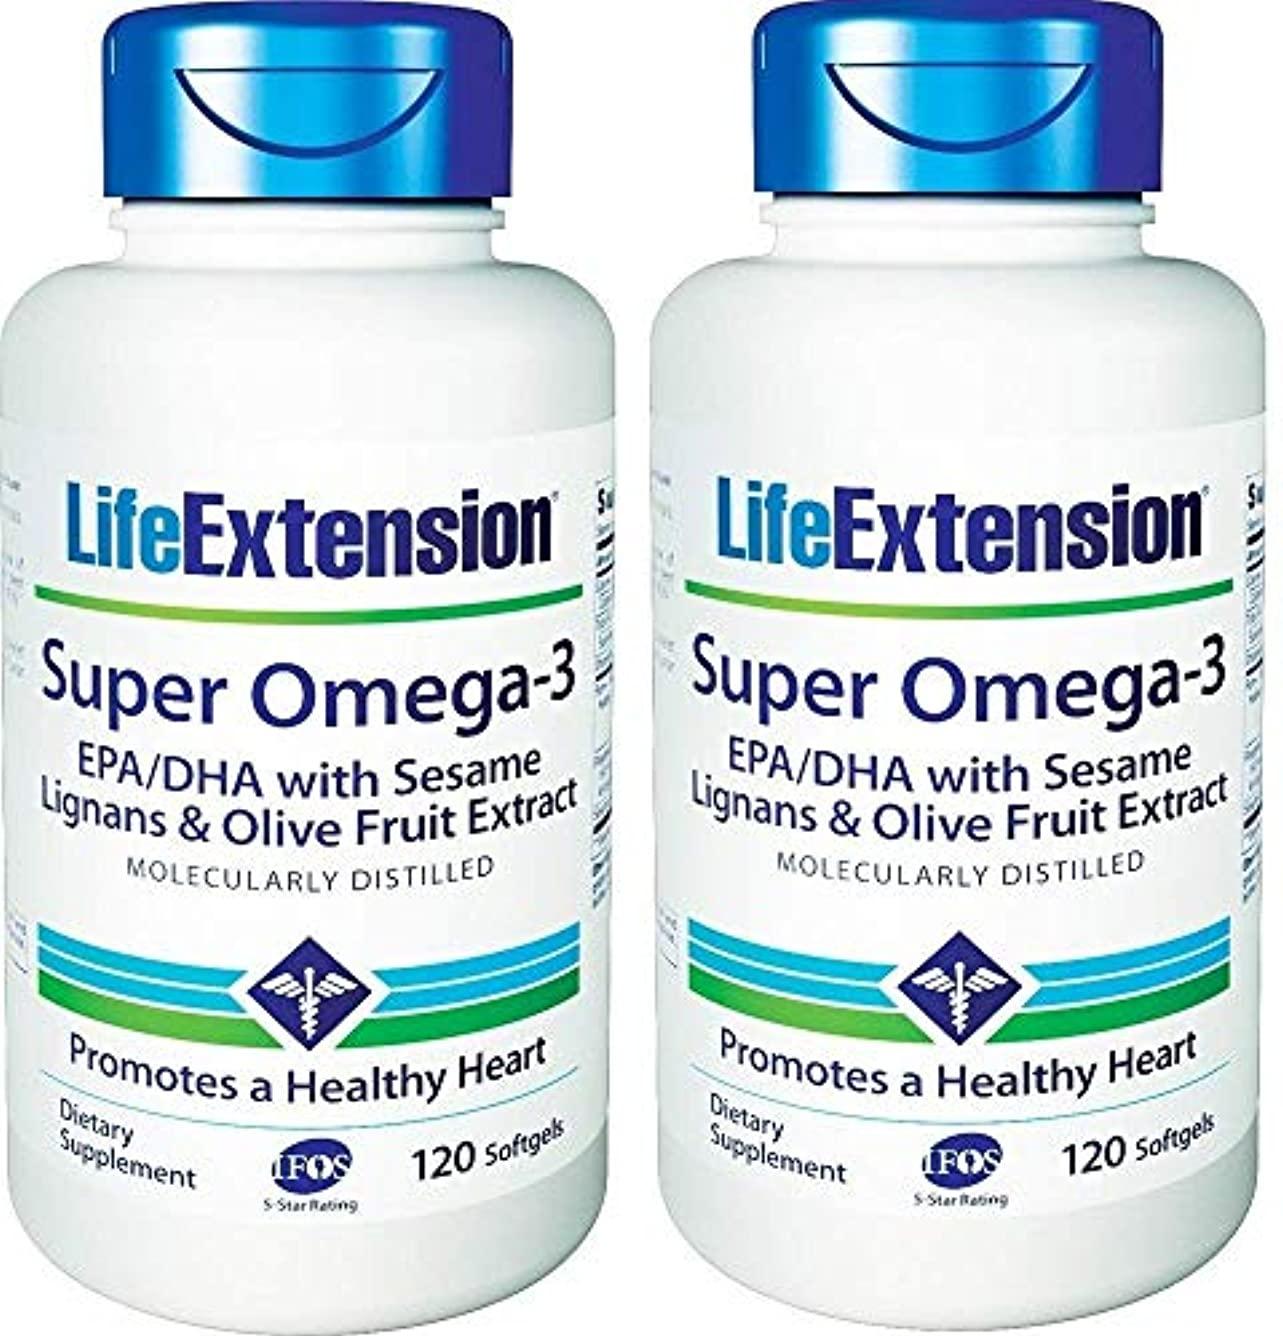 Life Extension - Super Omega-3, EPA/DHA with Sesame Lignans & Olive Extract - 120???????